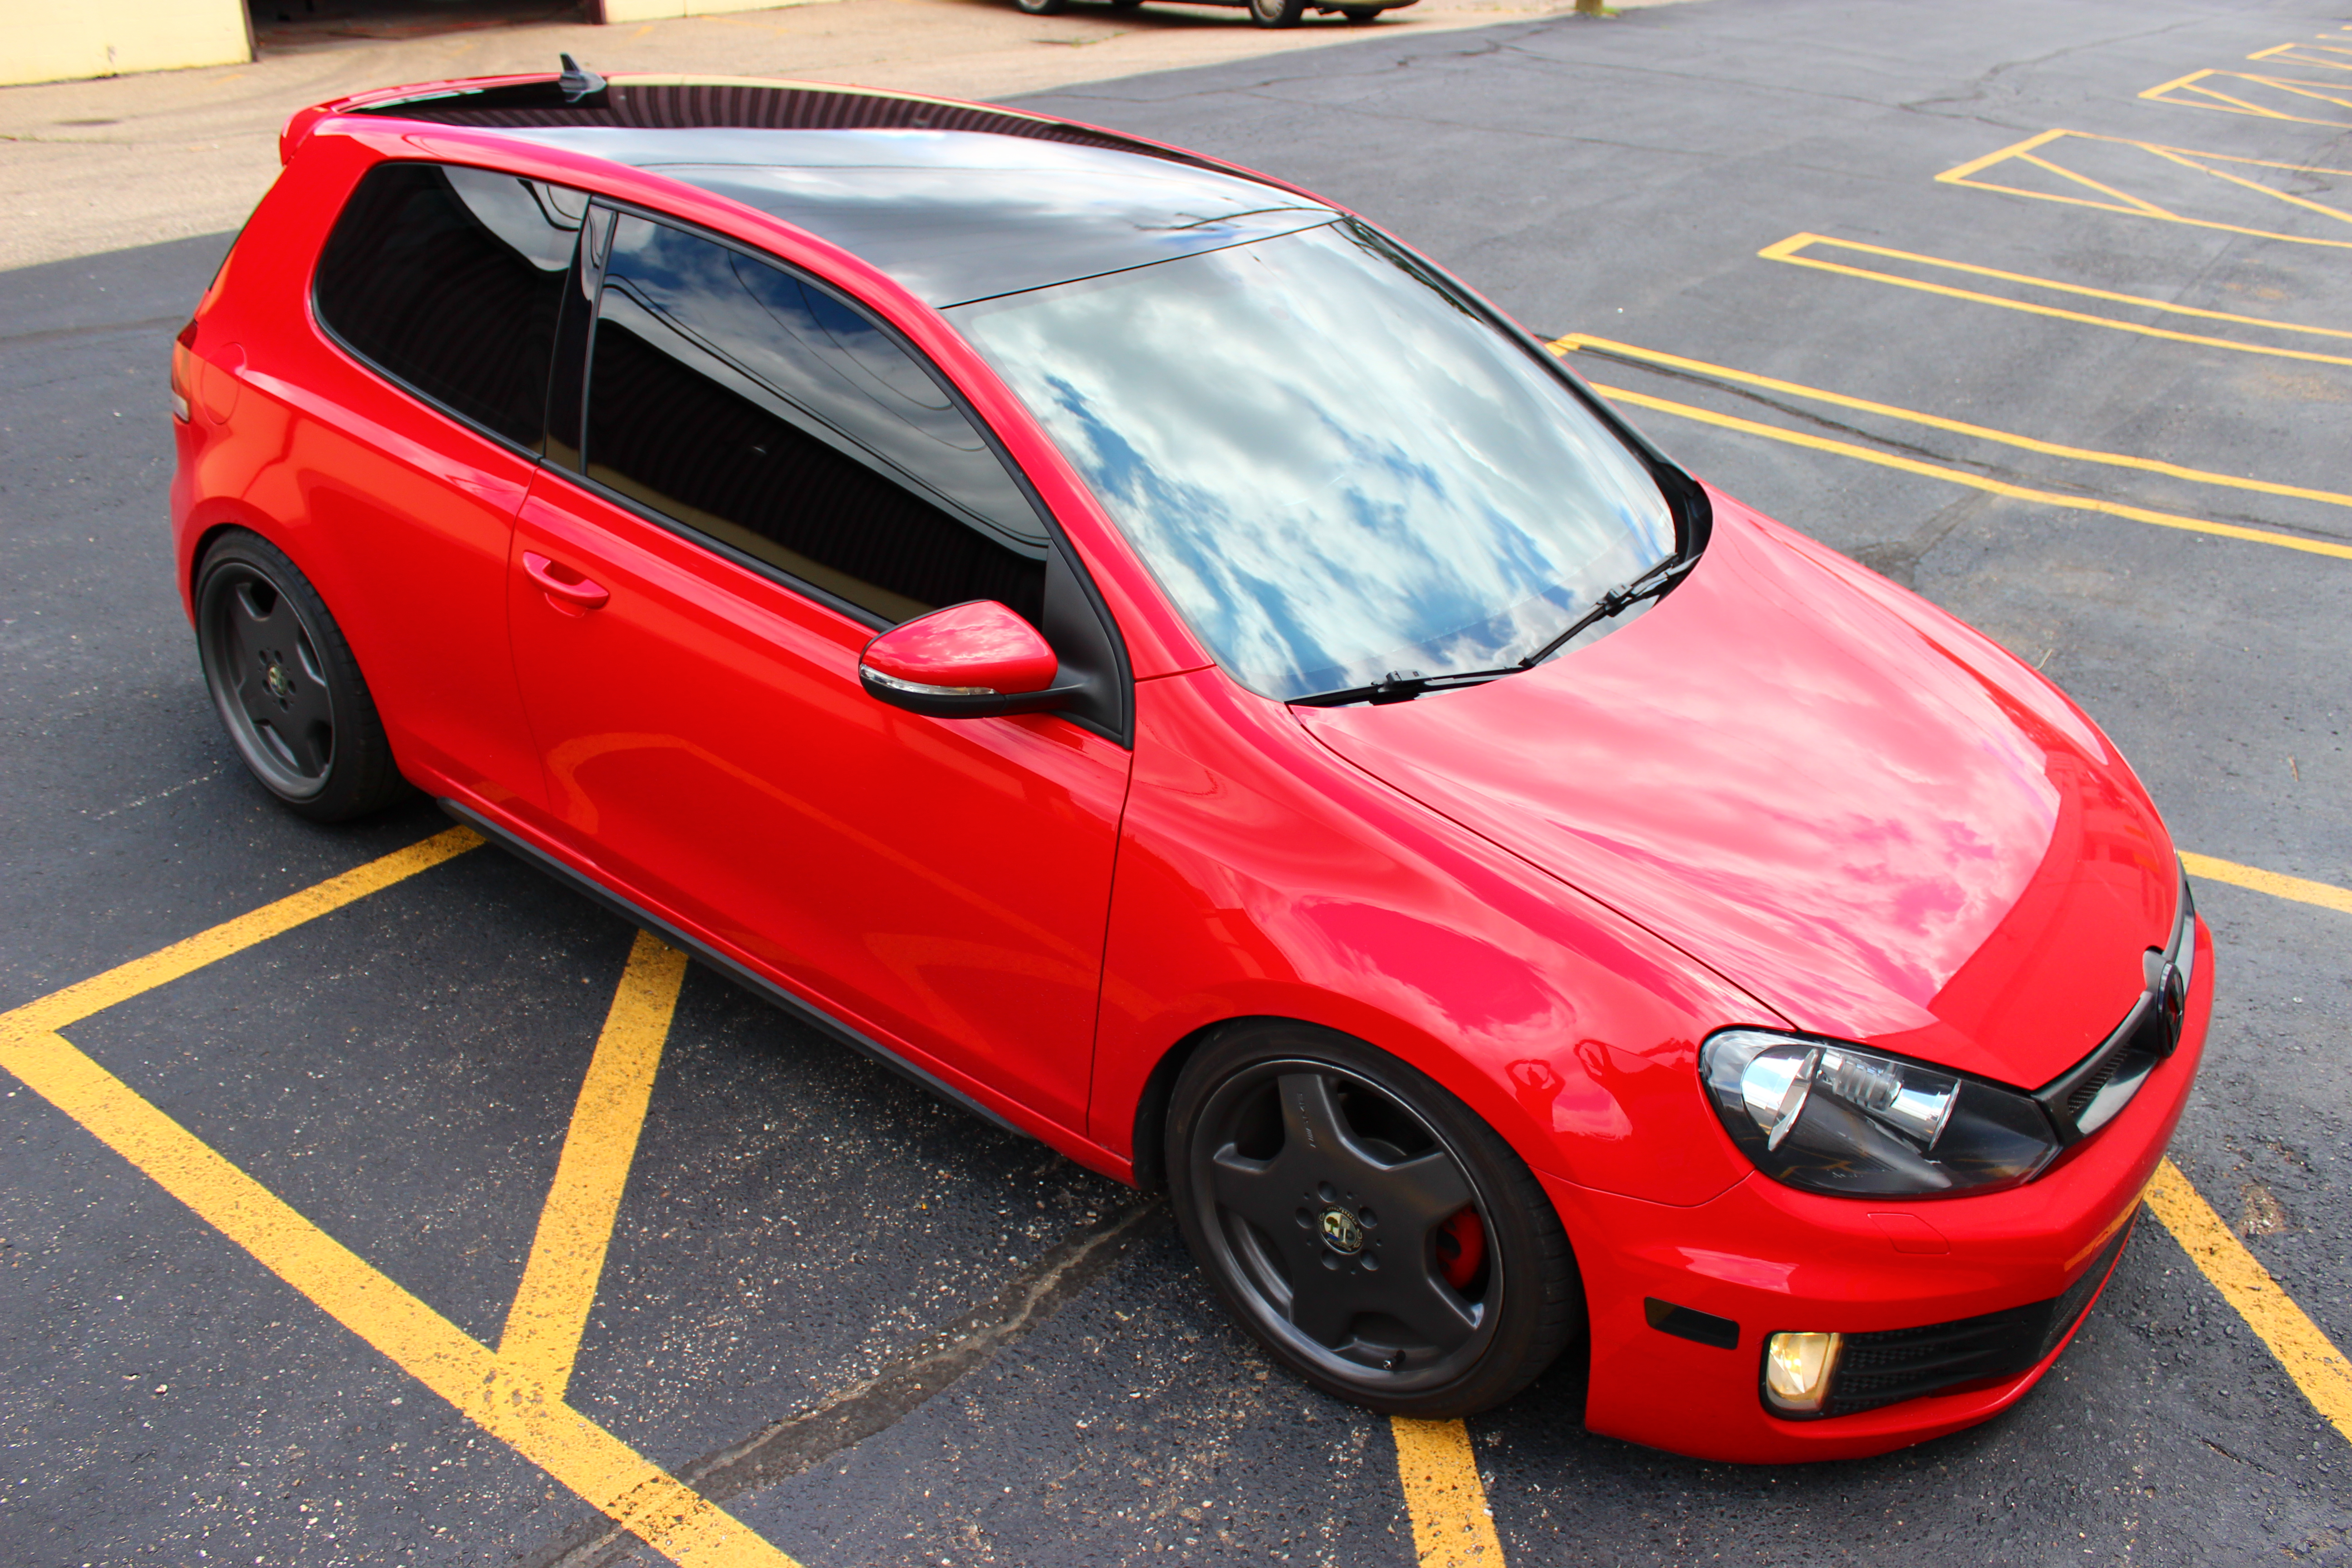 Gloss Black Roof Wrap - One Soul Graphics